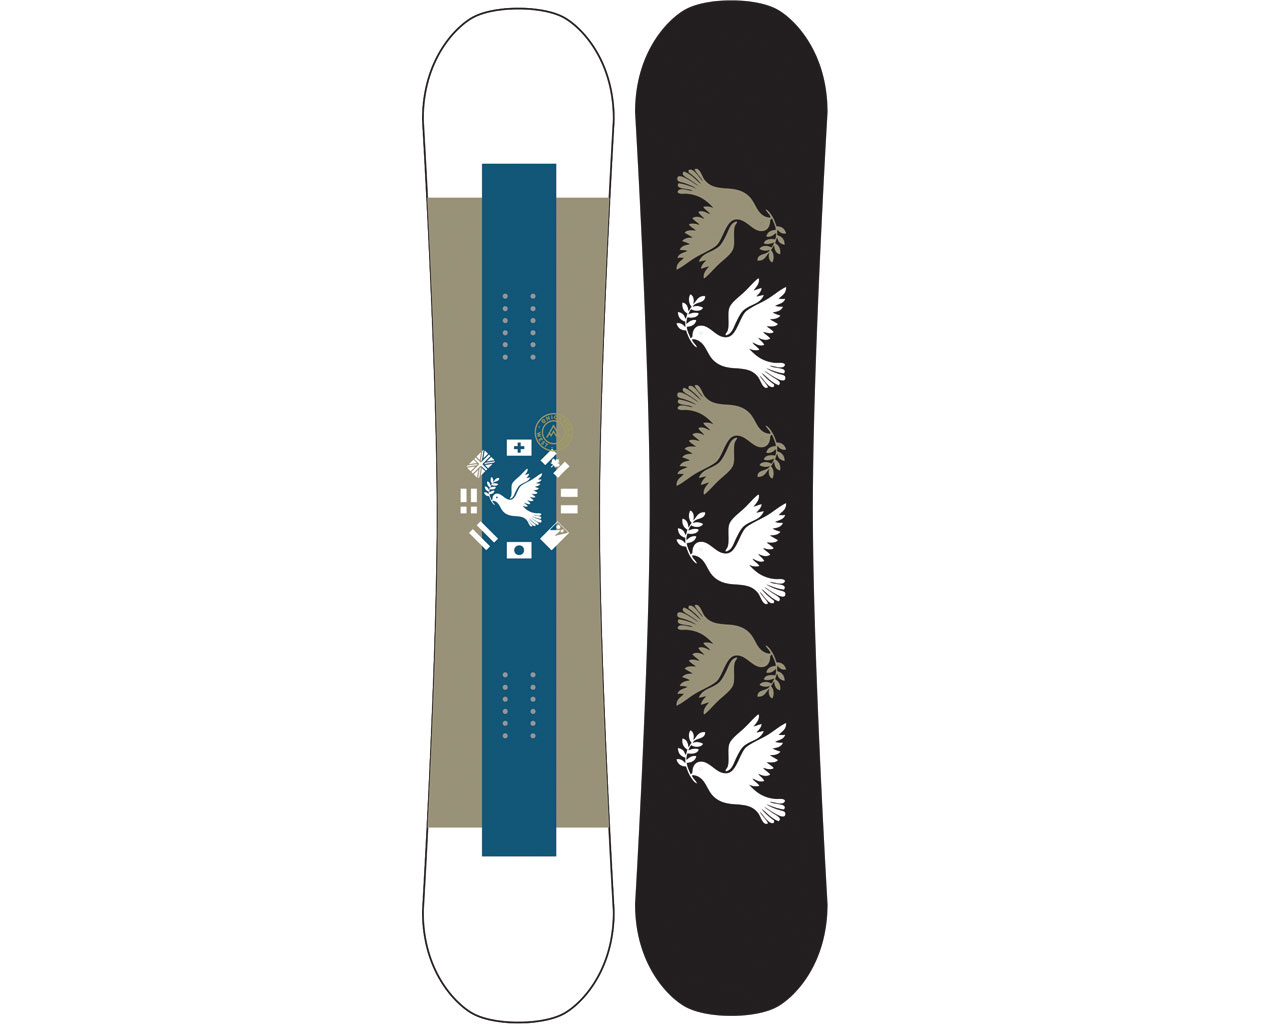 West FW20/21 Snowboard Preview